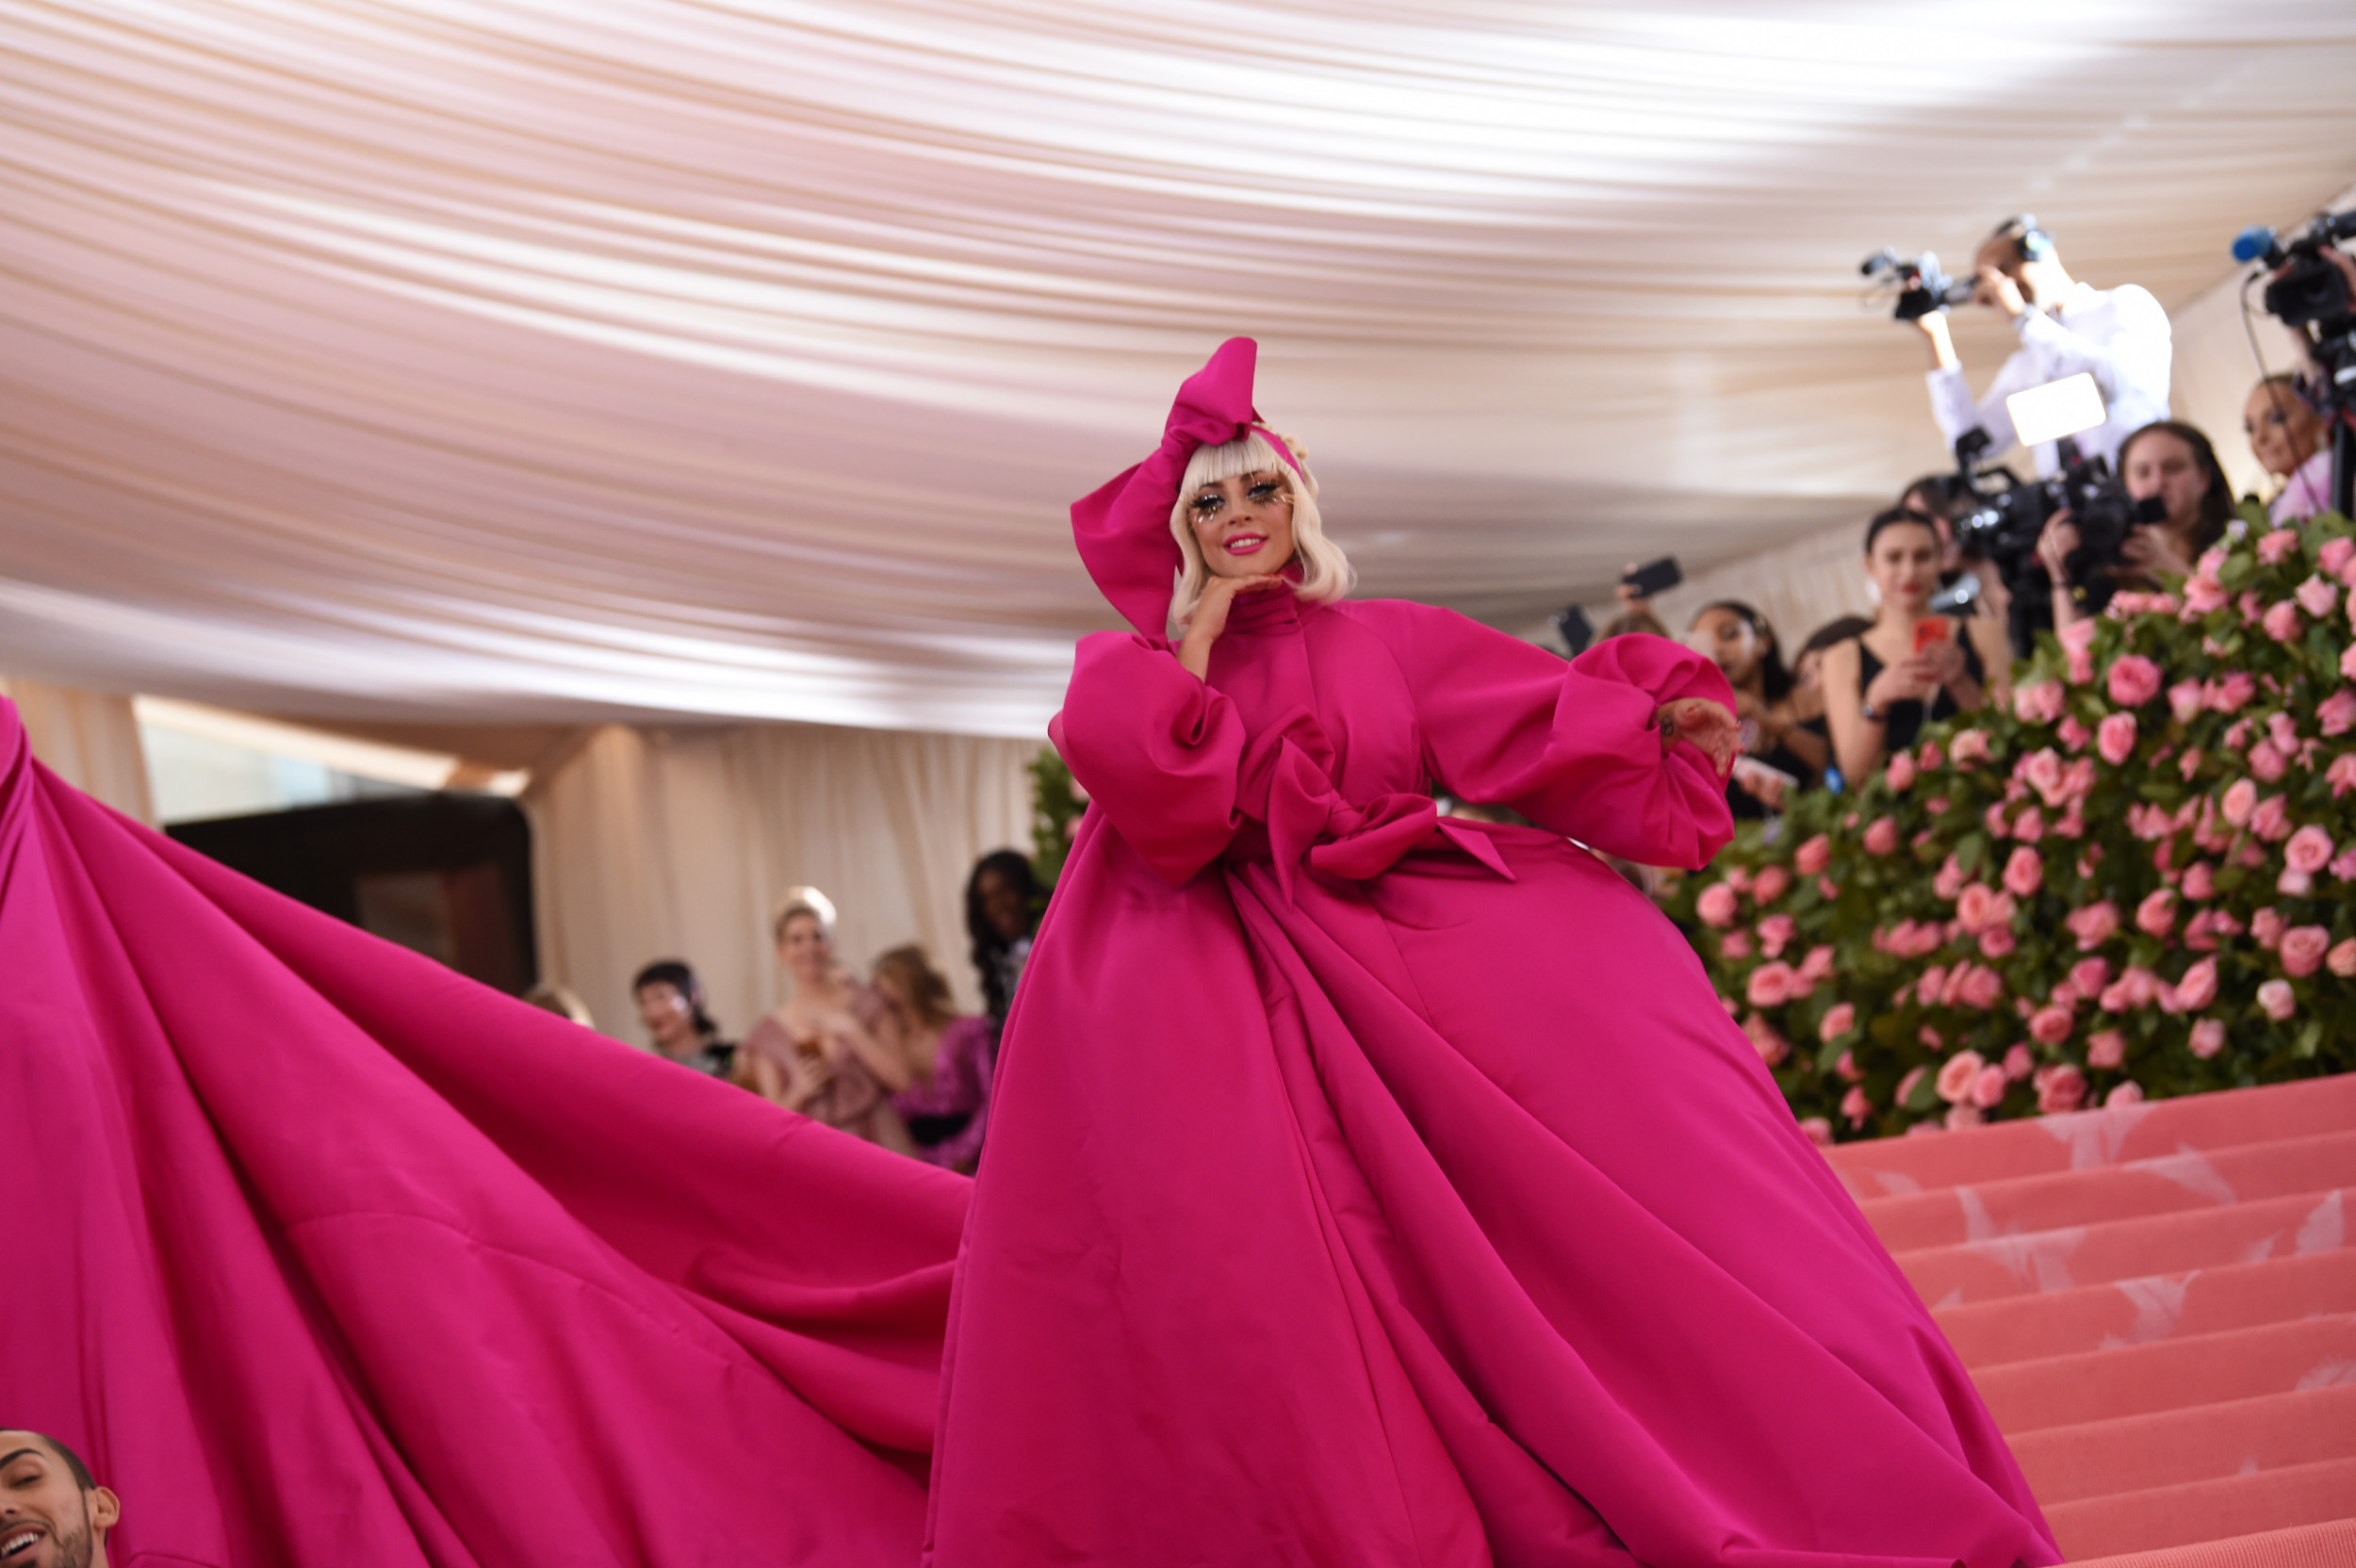 Met Gala Fashion 2020.Met Gala 2020 Theme About Time Fashion And Duration